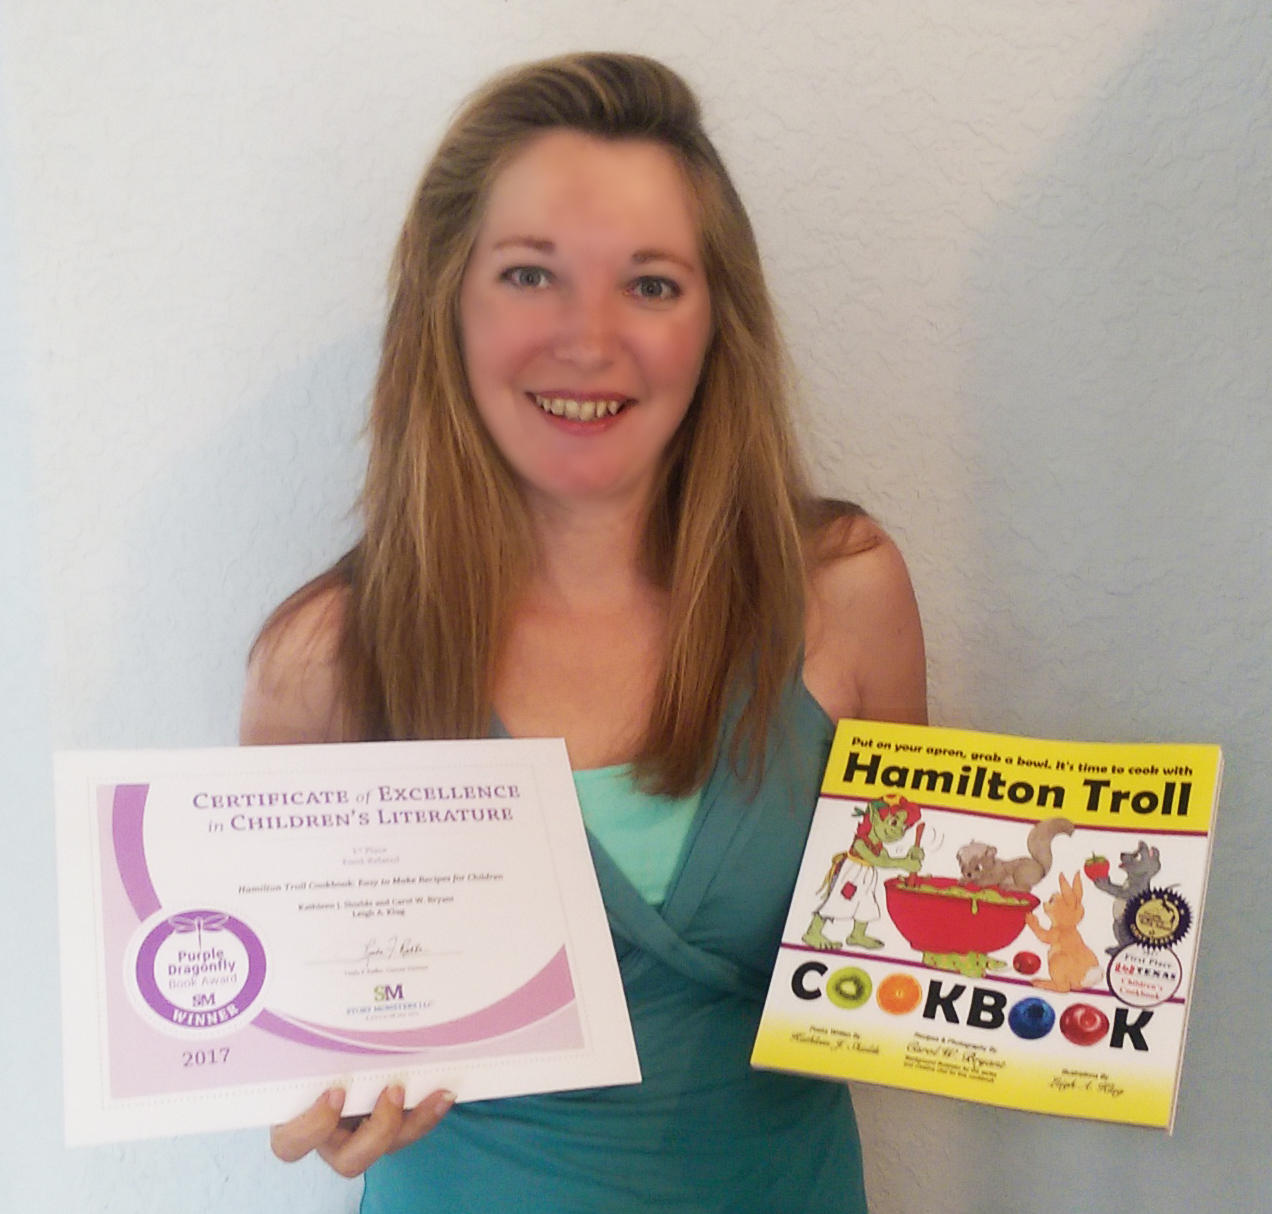 Kathleen J. Shields award winning author of the Hamilton Troll Cookbook